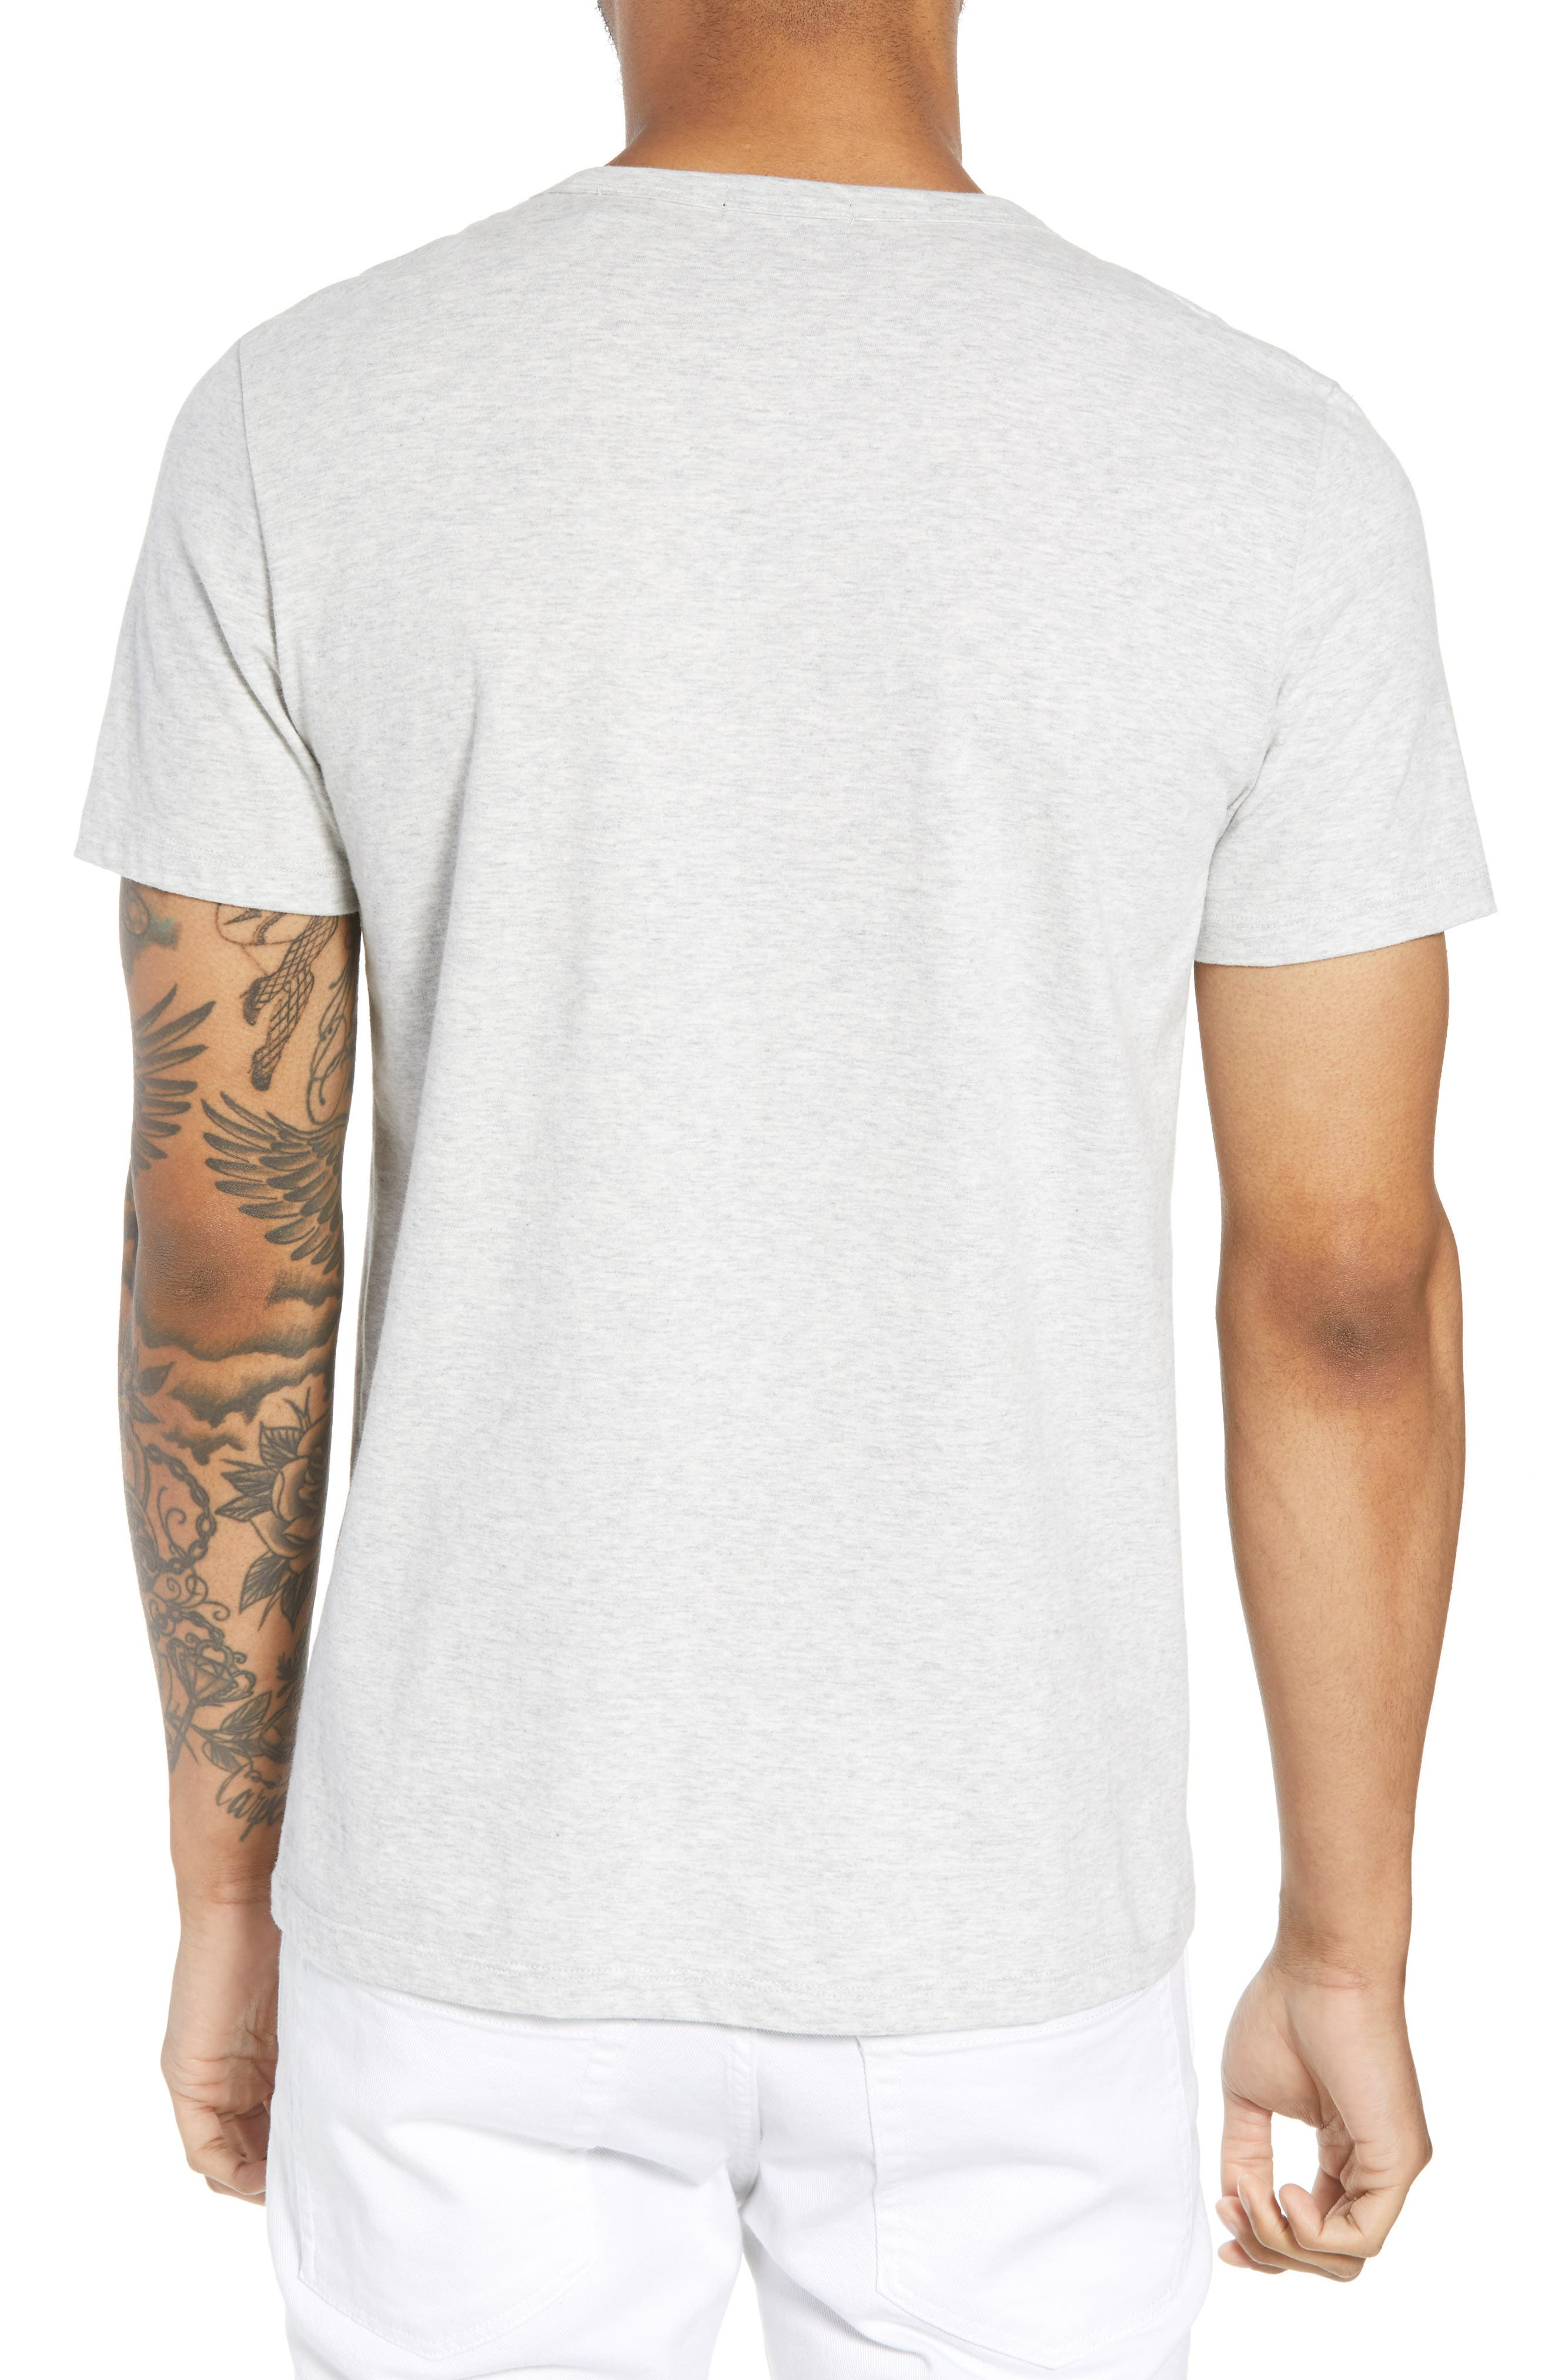 THEORY,                             Essential Pocket T-Shirt,                             Alternate thumbnail 2, color,                             020